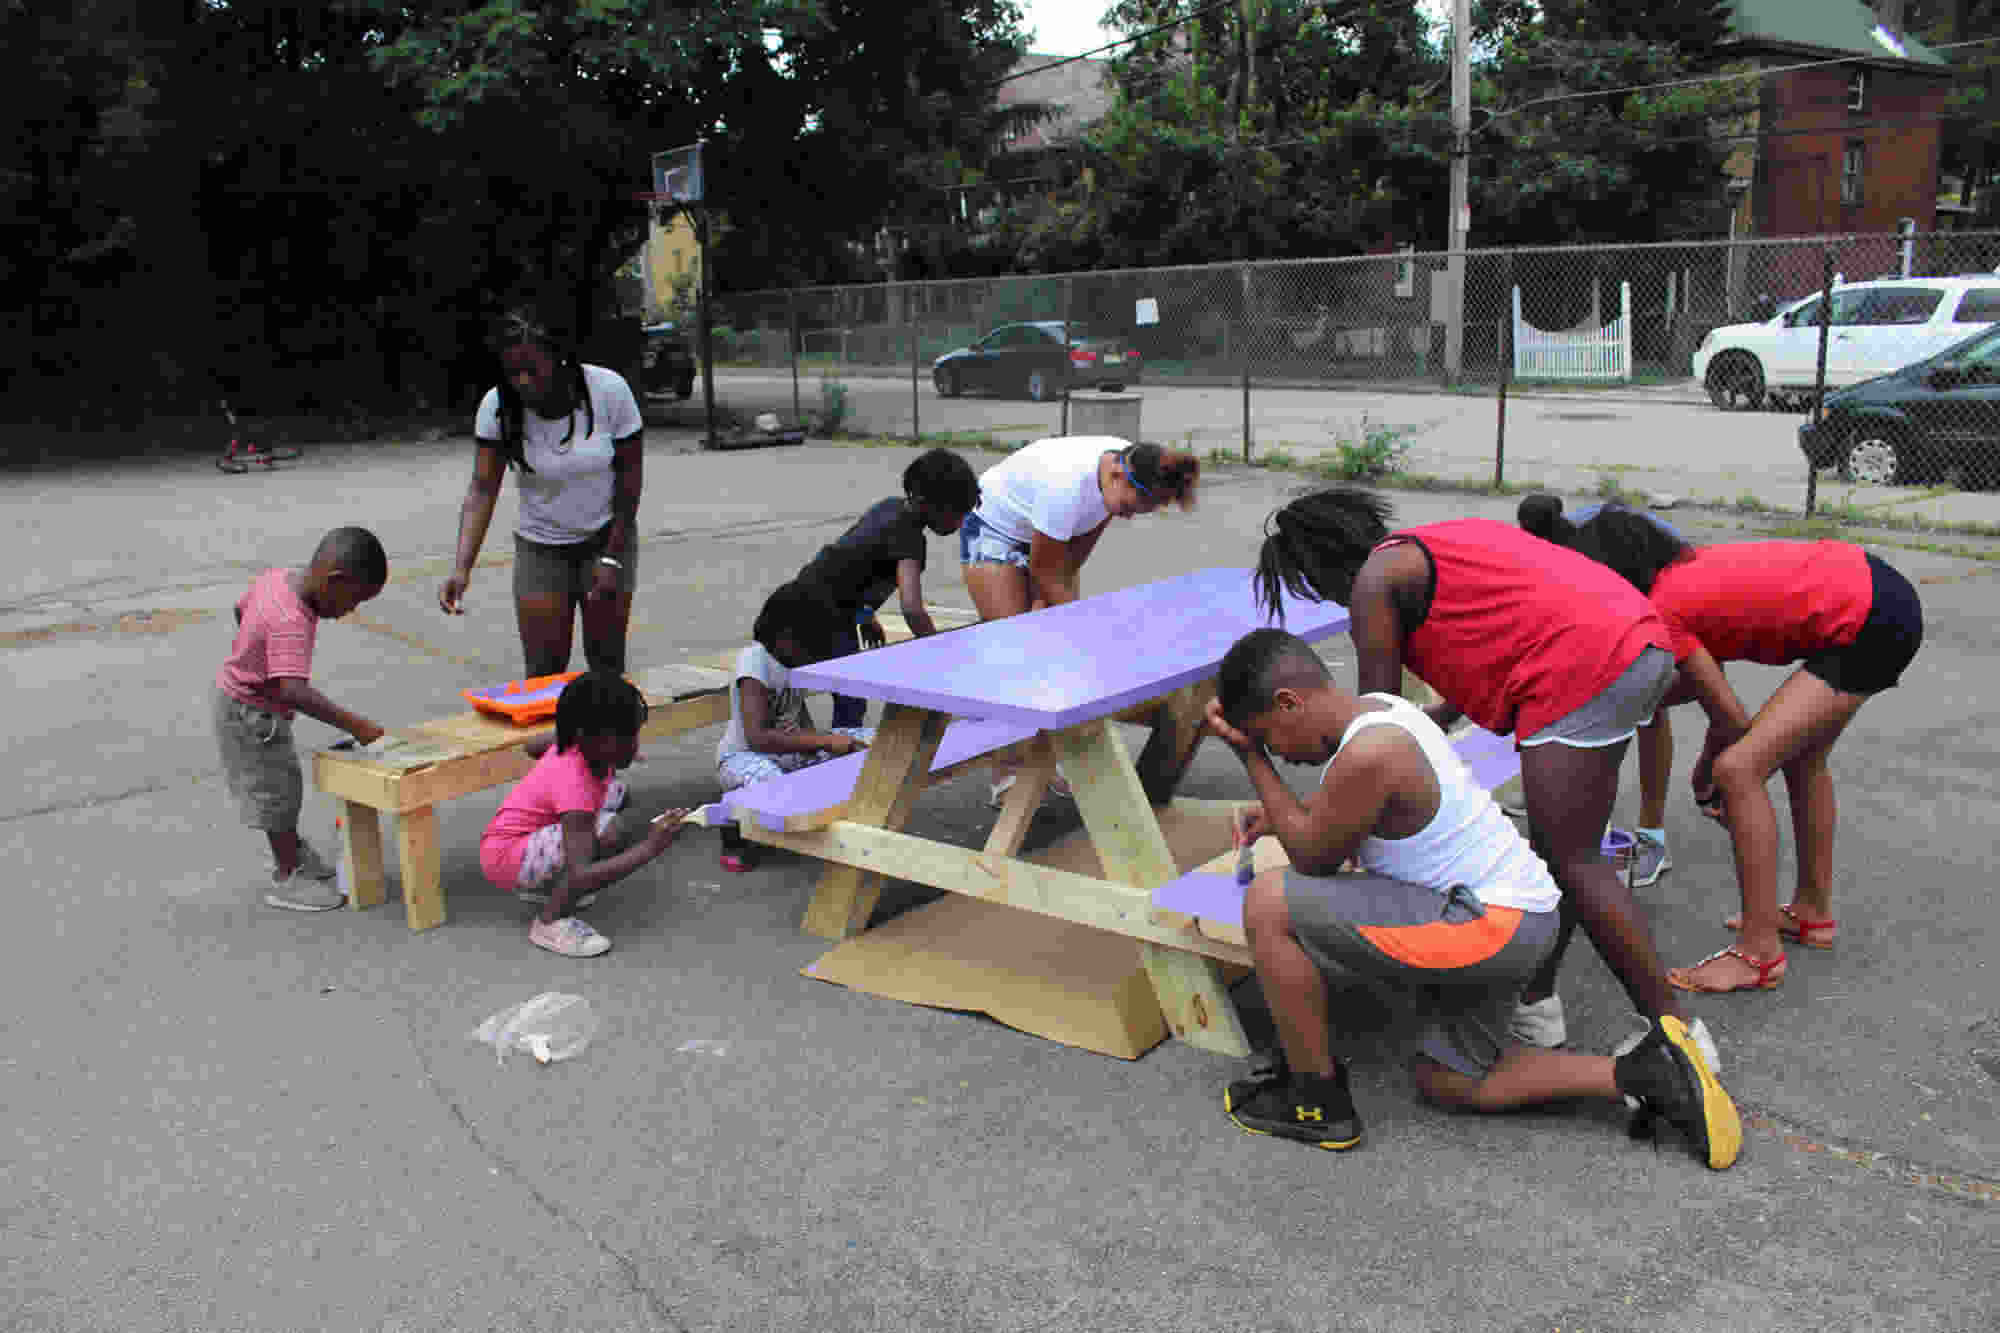 Neighborhood youth helped us write a grant for a day to clean-up the playground and build picnic benches.